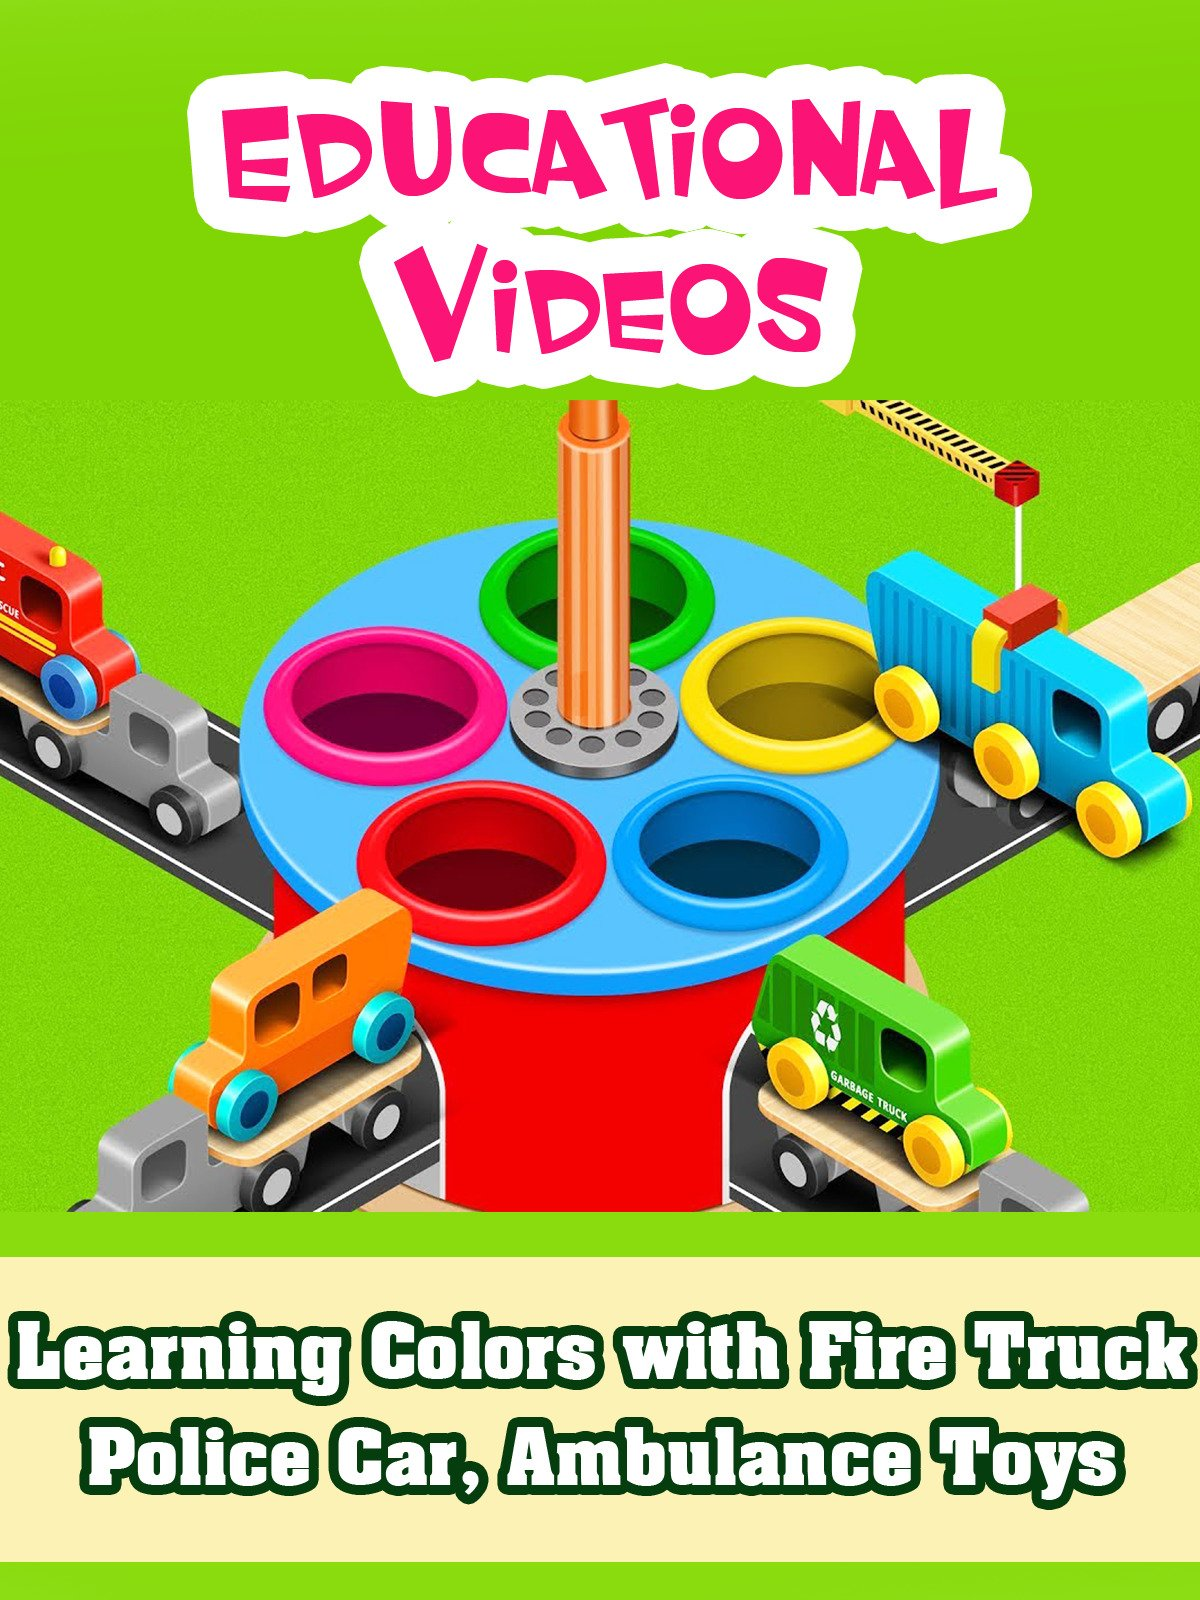 Learning Colors with Fire Truck, Police Car, Ambulance Toys